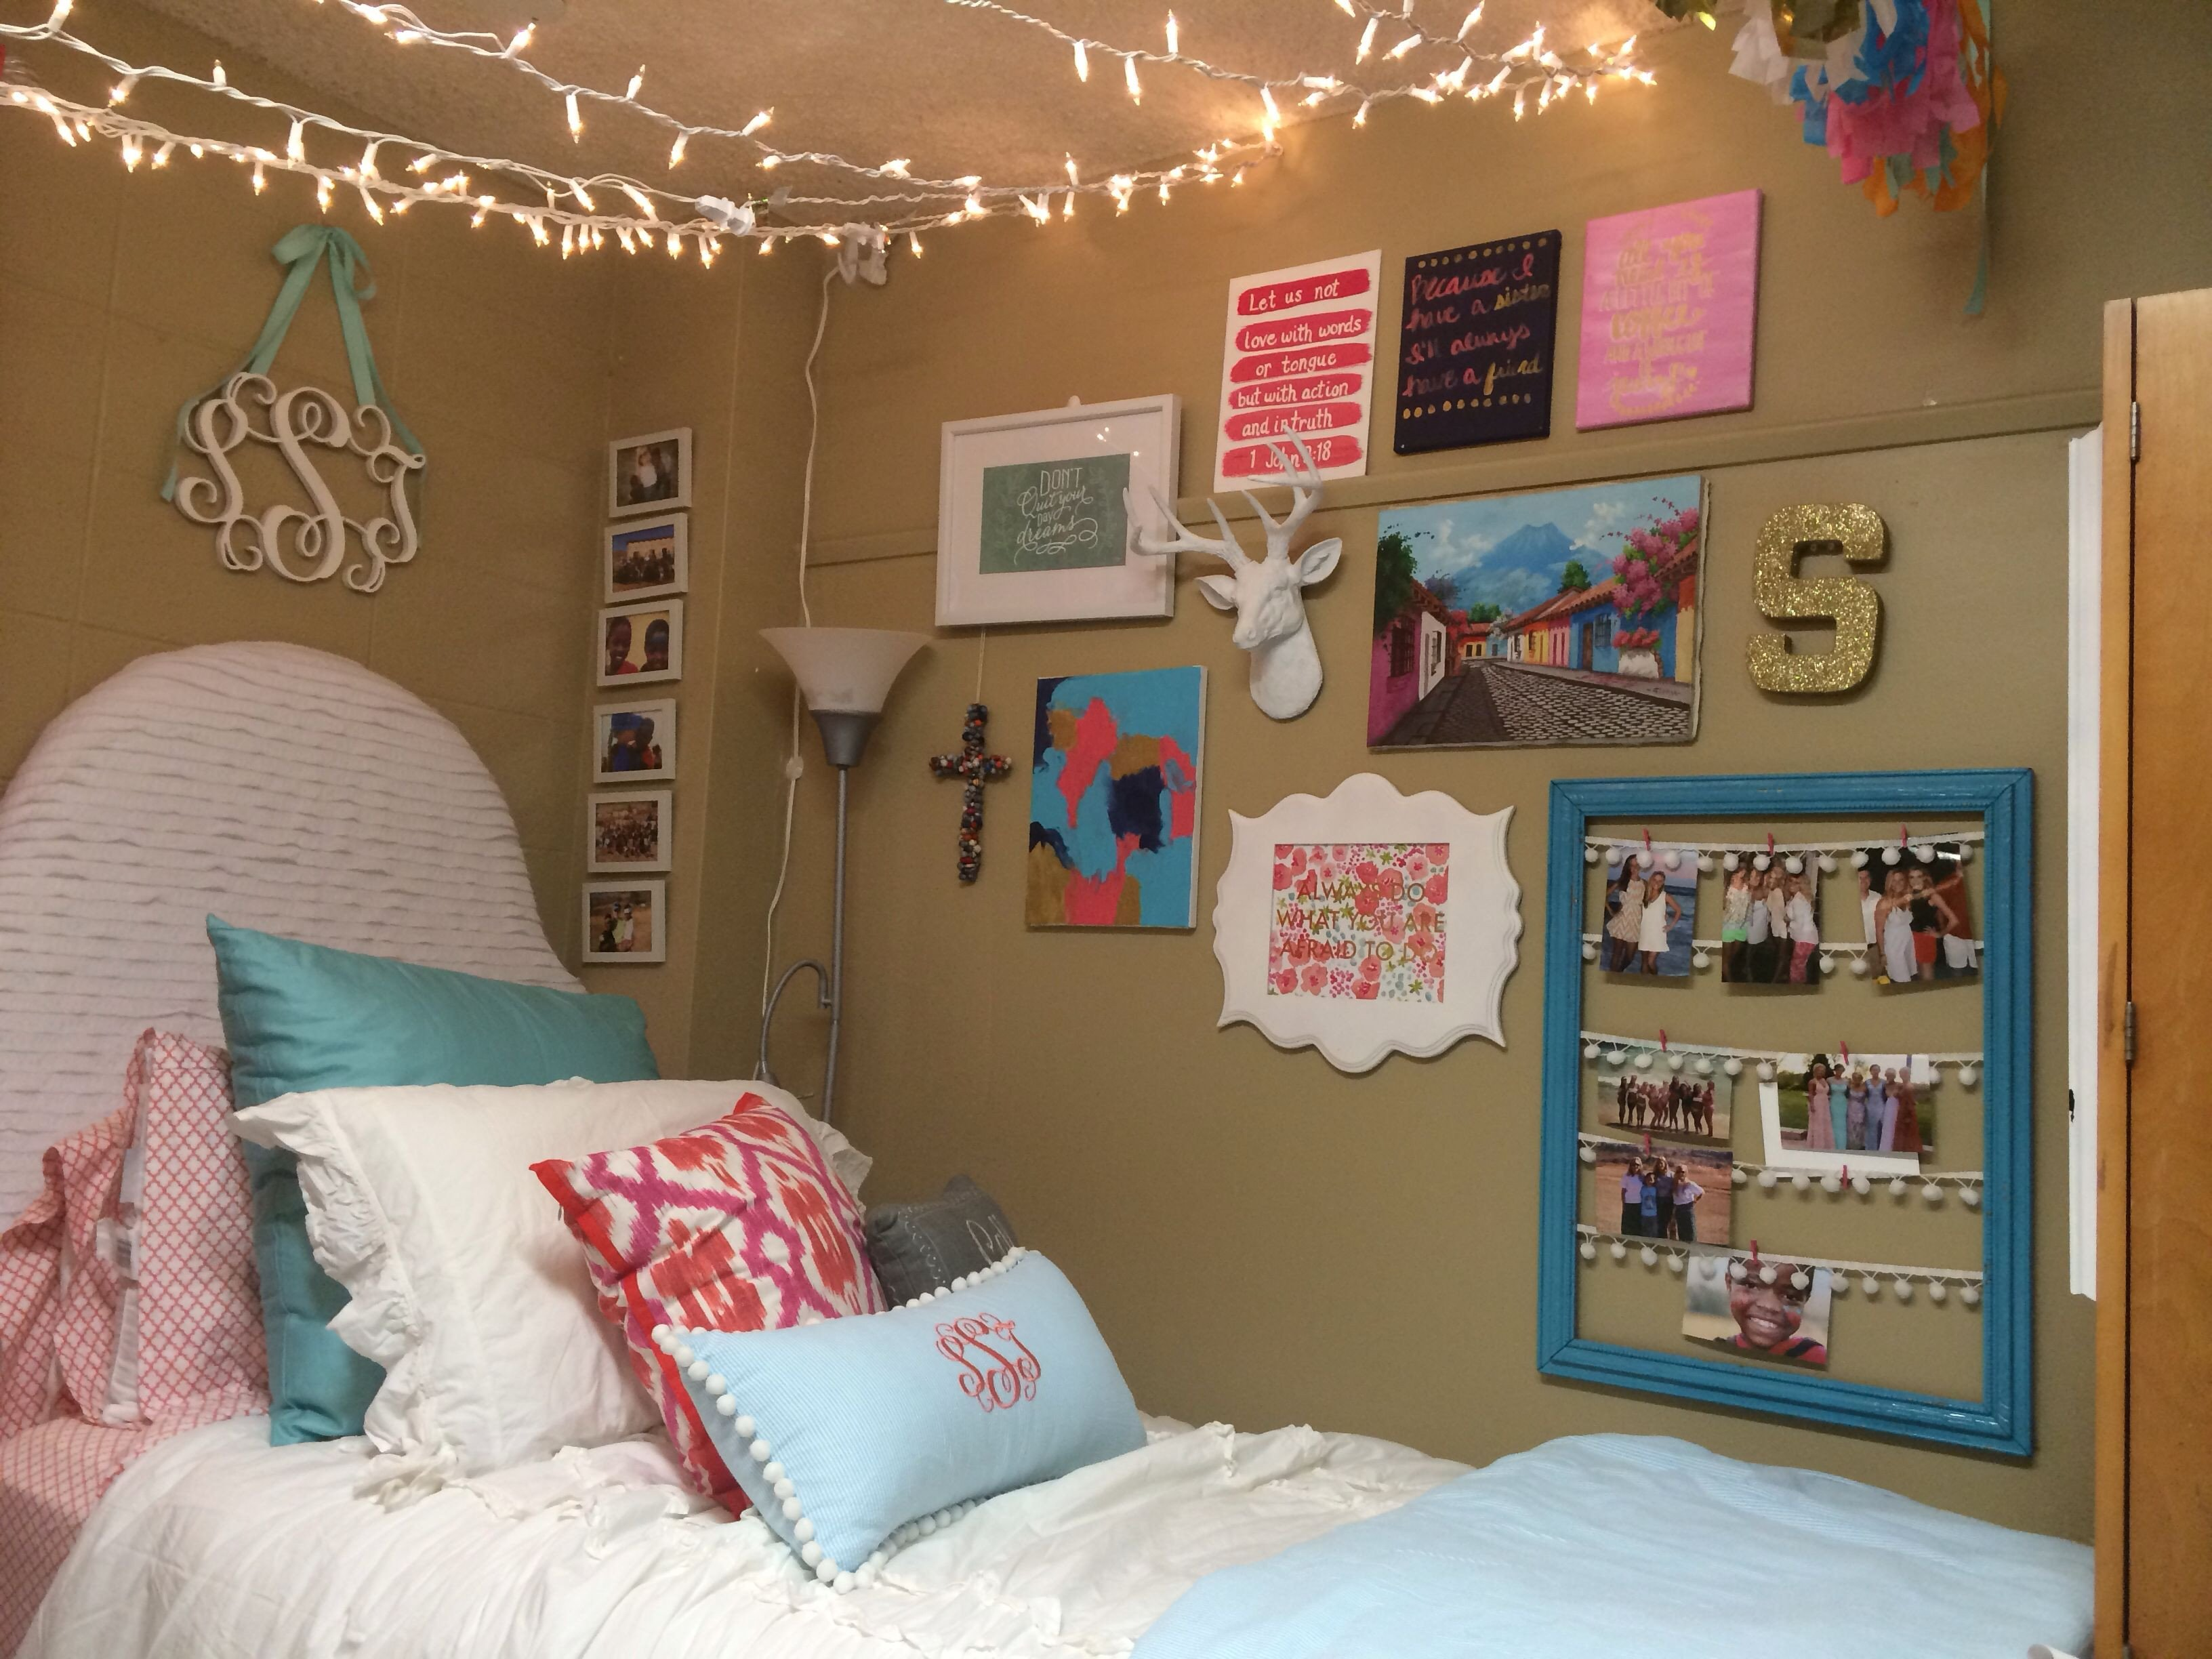 Wall Decor for Dorm Rooms Beautiful Crosby Dorm Ole Miss Love the Gallery Wall and Lights Dorm Ideas Pinterest